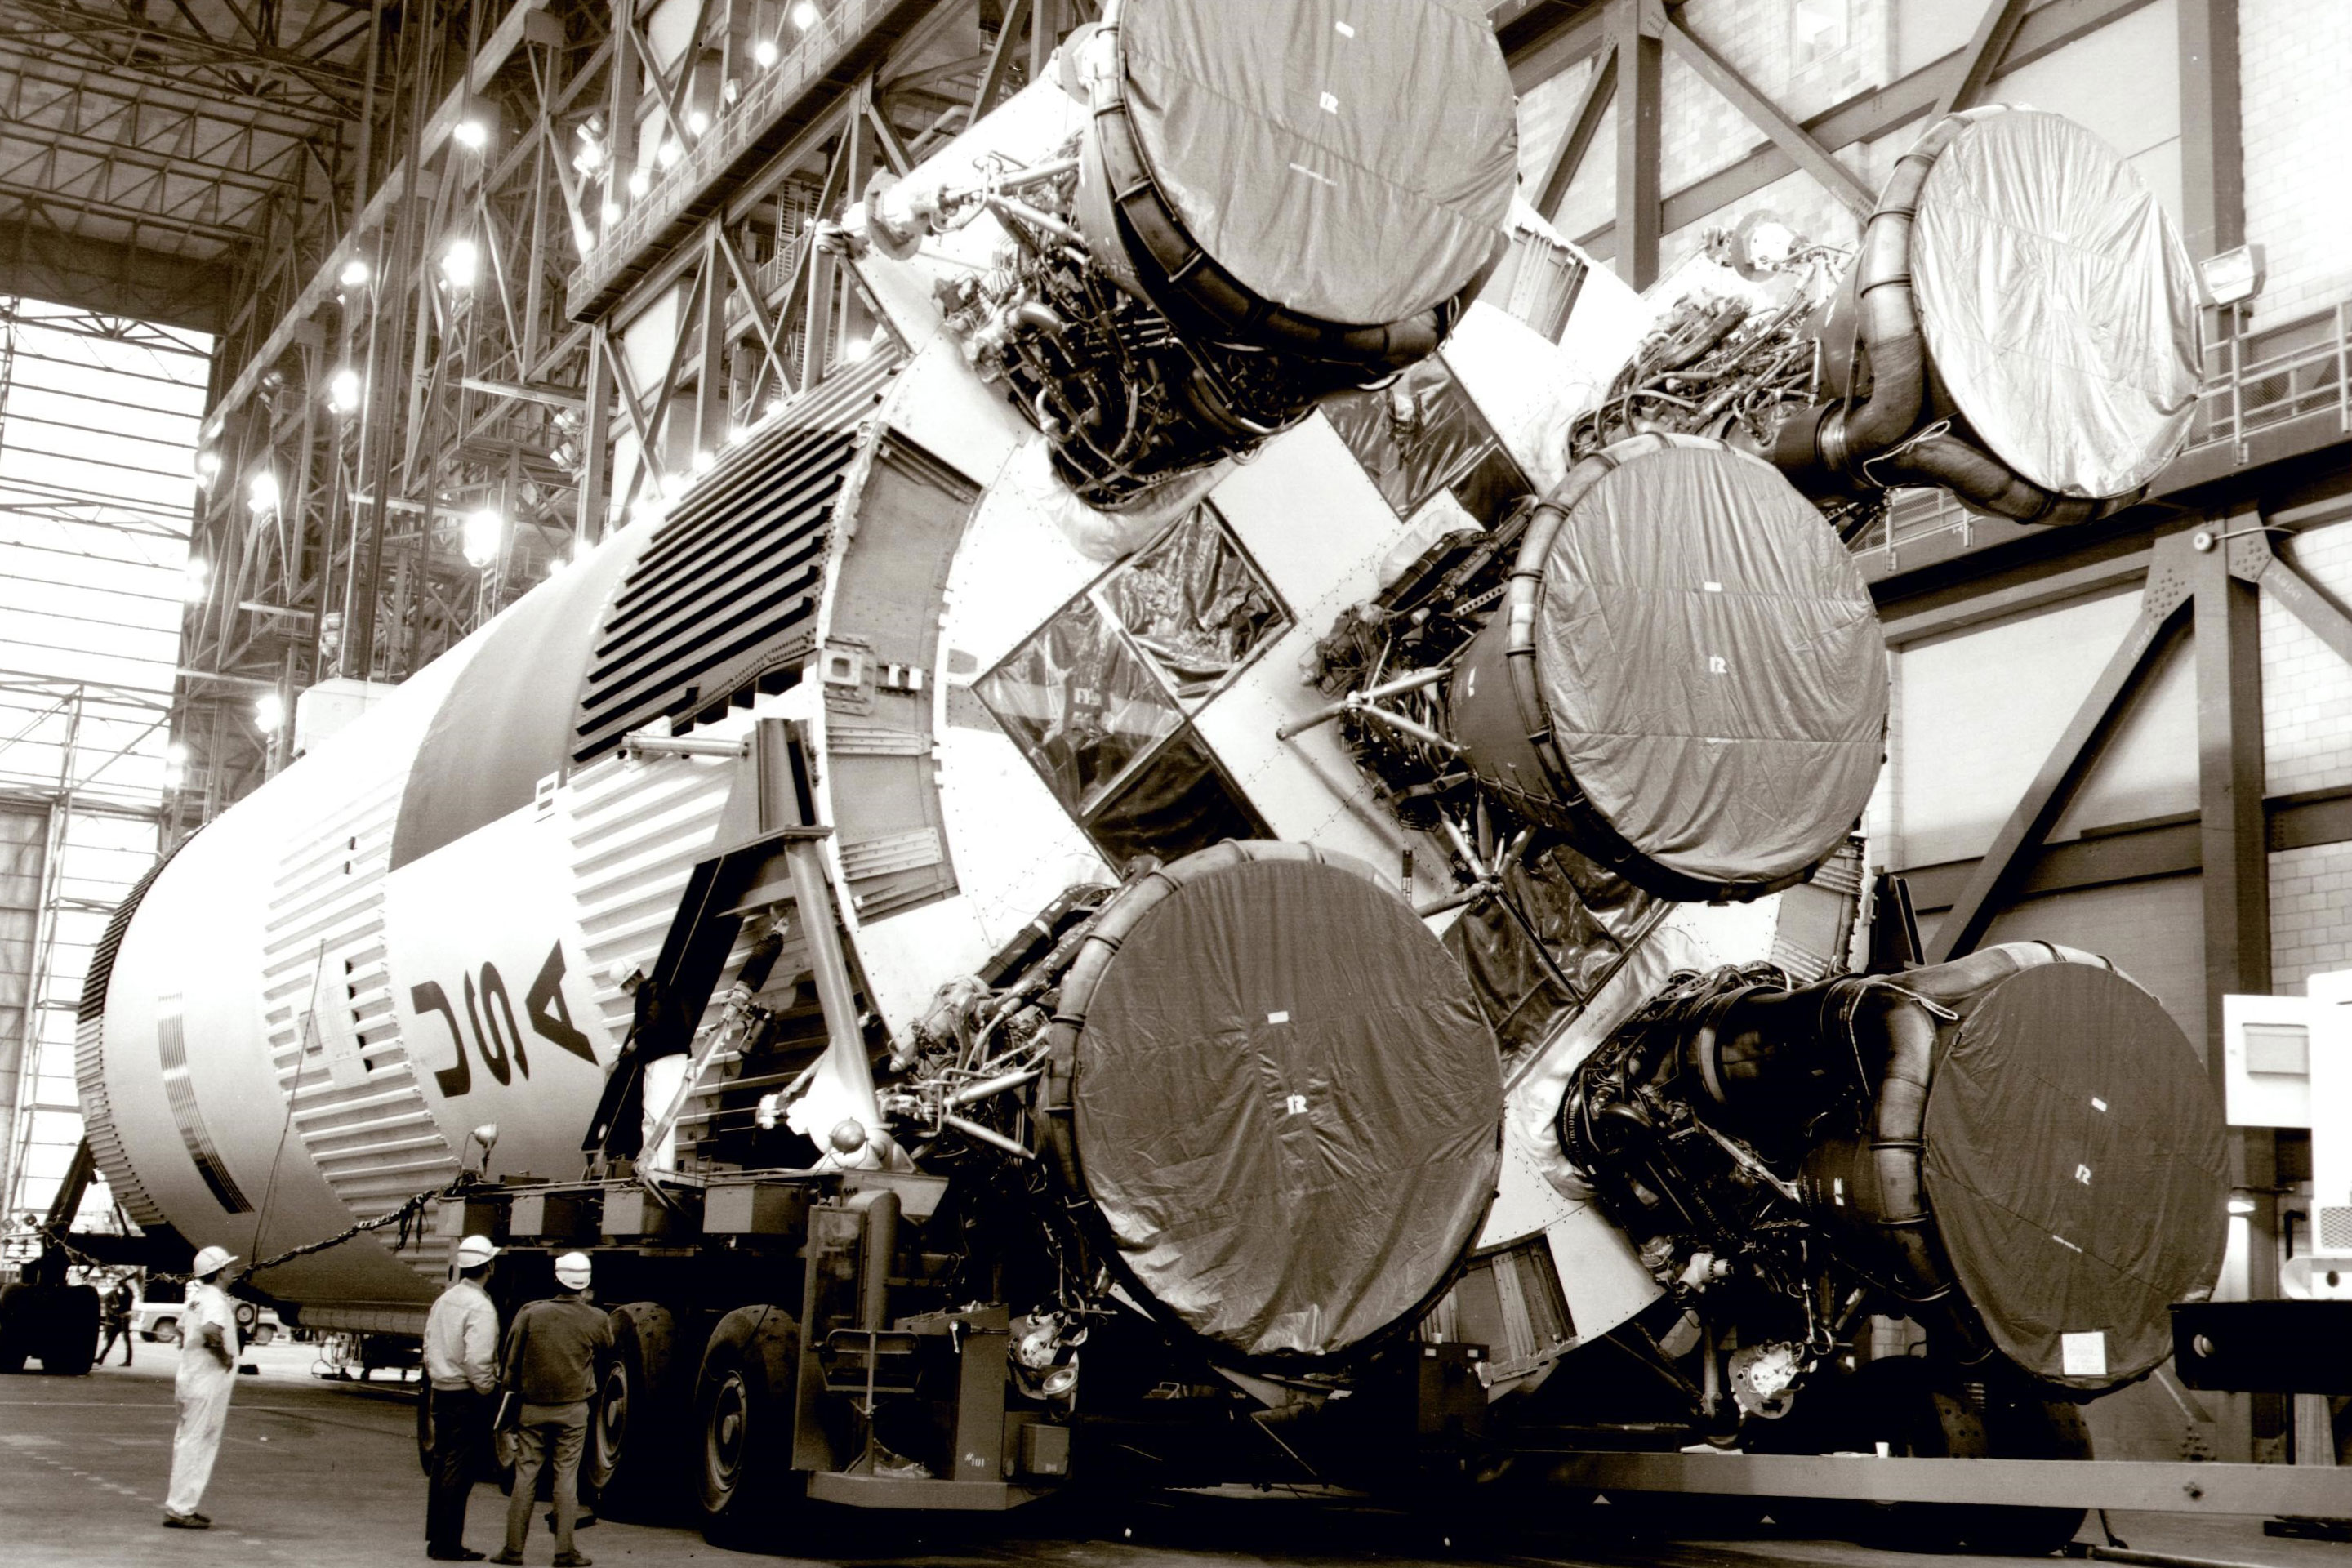 The Saturn V rocket is lifted onto its mobile launcher in the Vehicle Assembly Building at Kennedy Space Center in 1969.